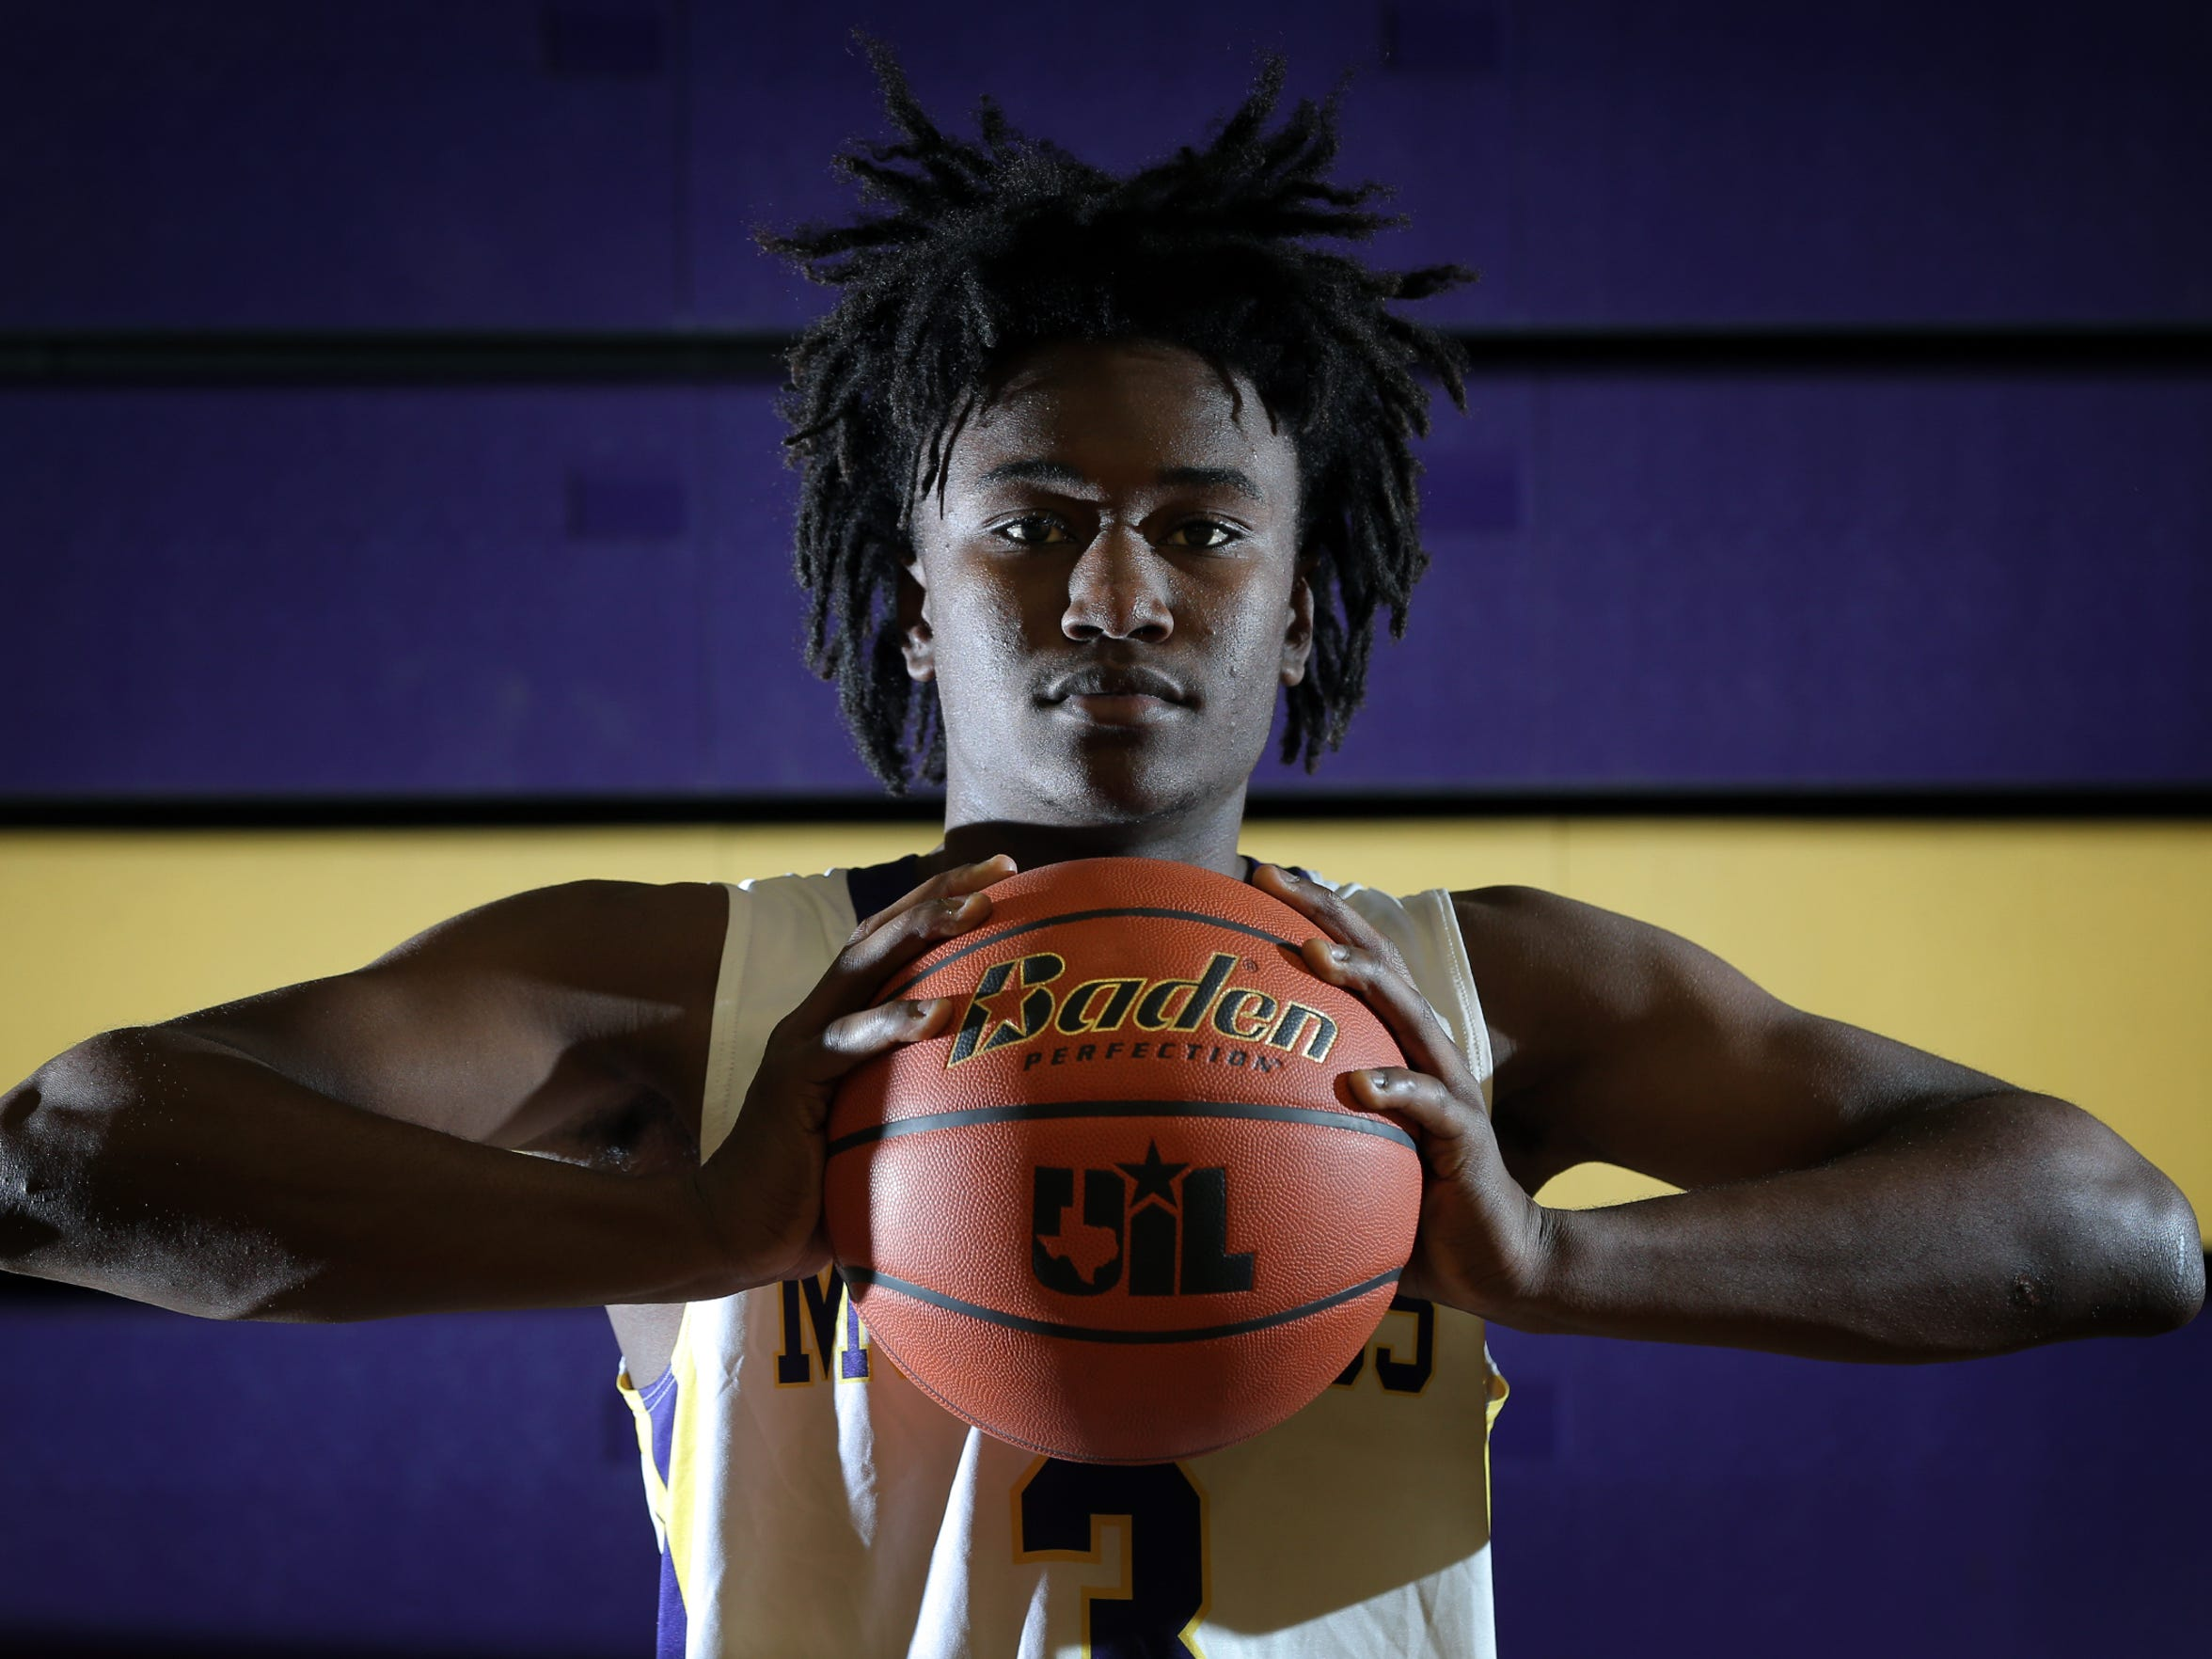 Burges junior Jawaun Newton is the El Paso Times' Boy's